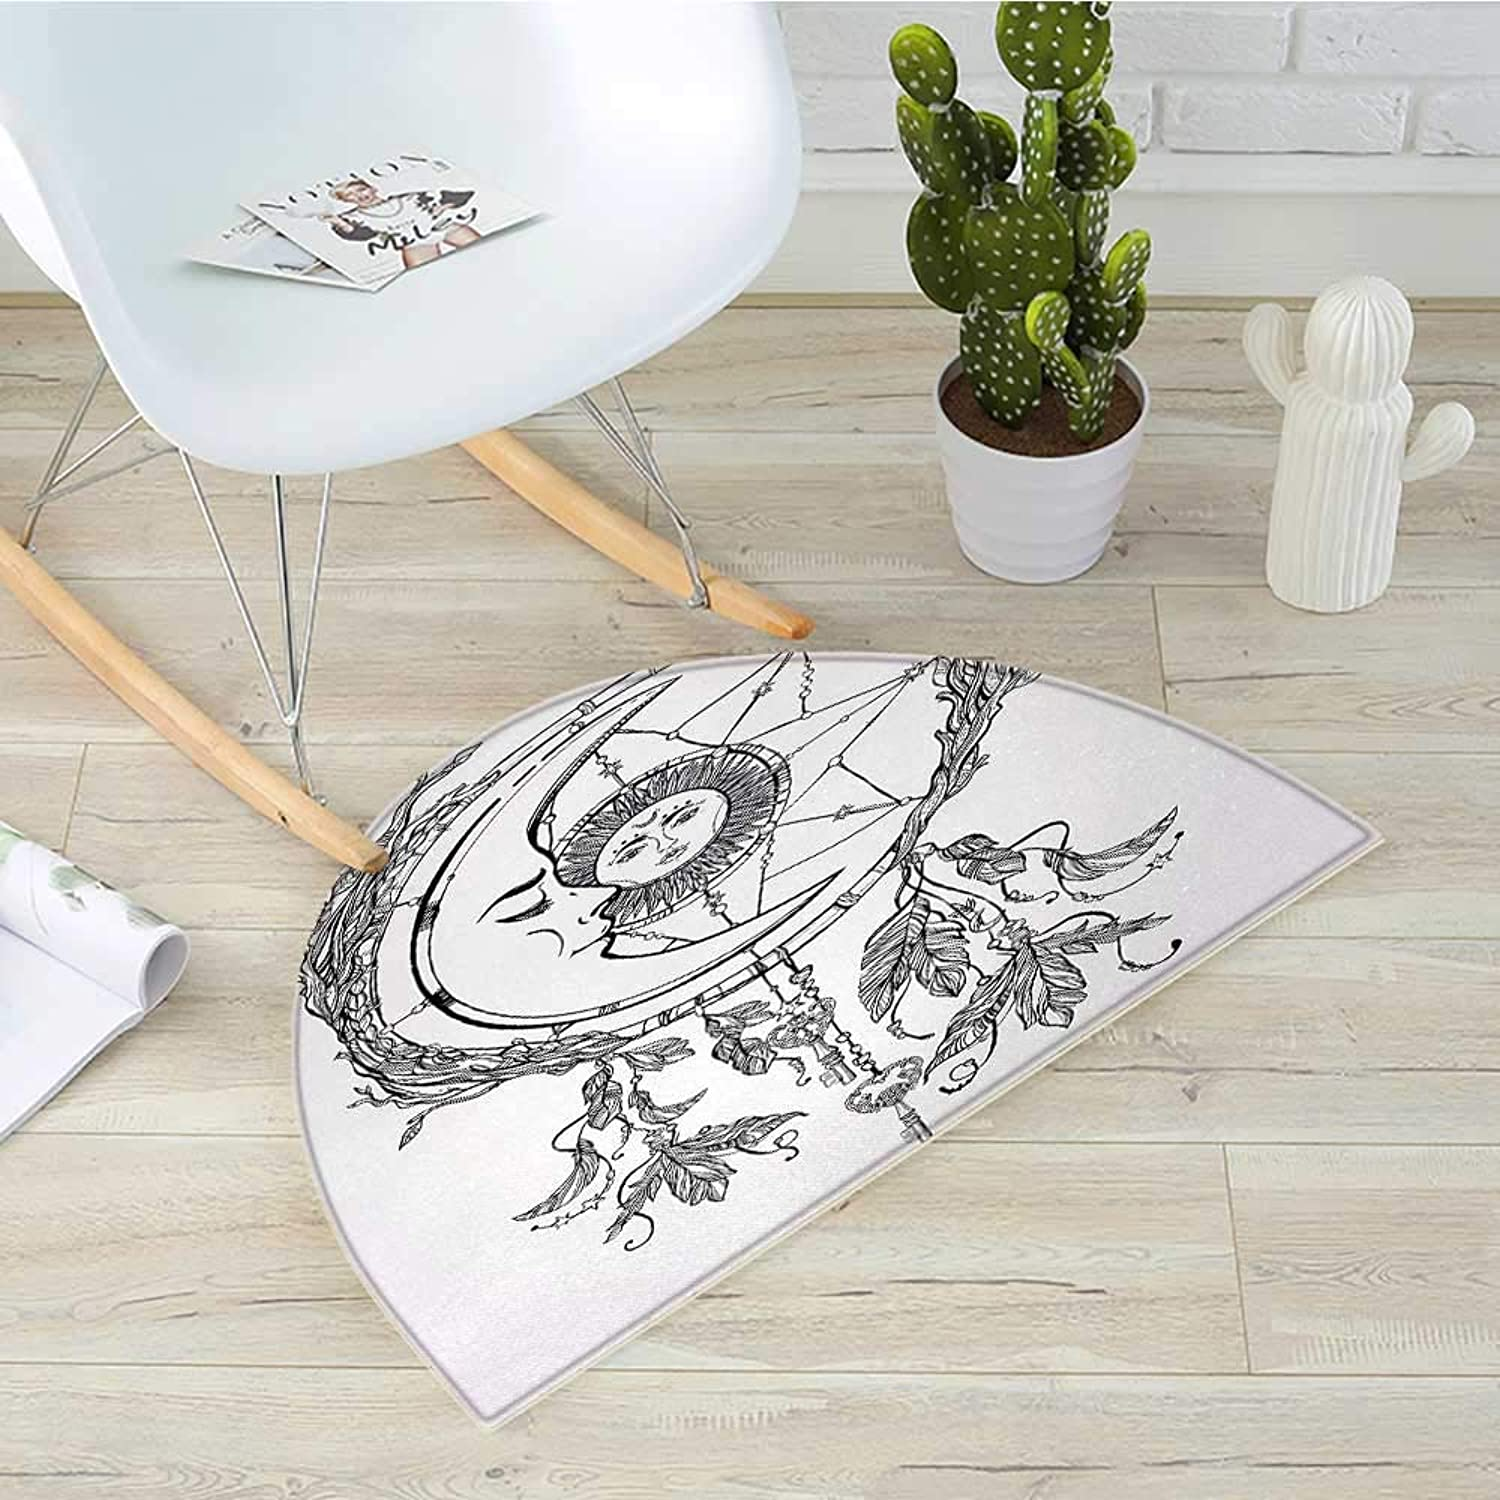 Mystic Half Round Door mats Tribal Ethnic Dreamcatcher Feathers with Sun and Moon Inside Cosmos Artsy Image Bathroom Mat H 39.3  xD 59  Black White